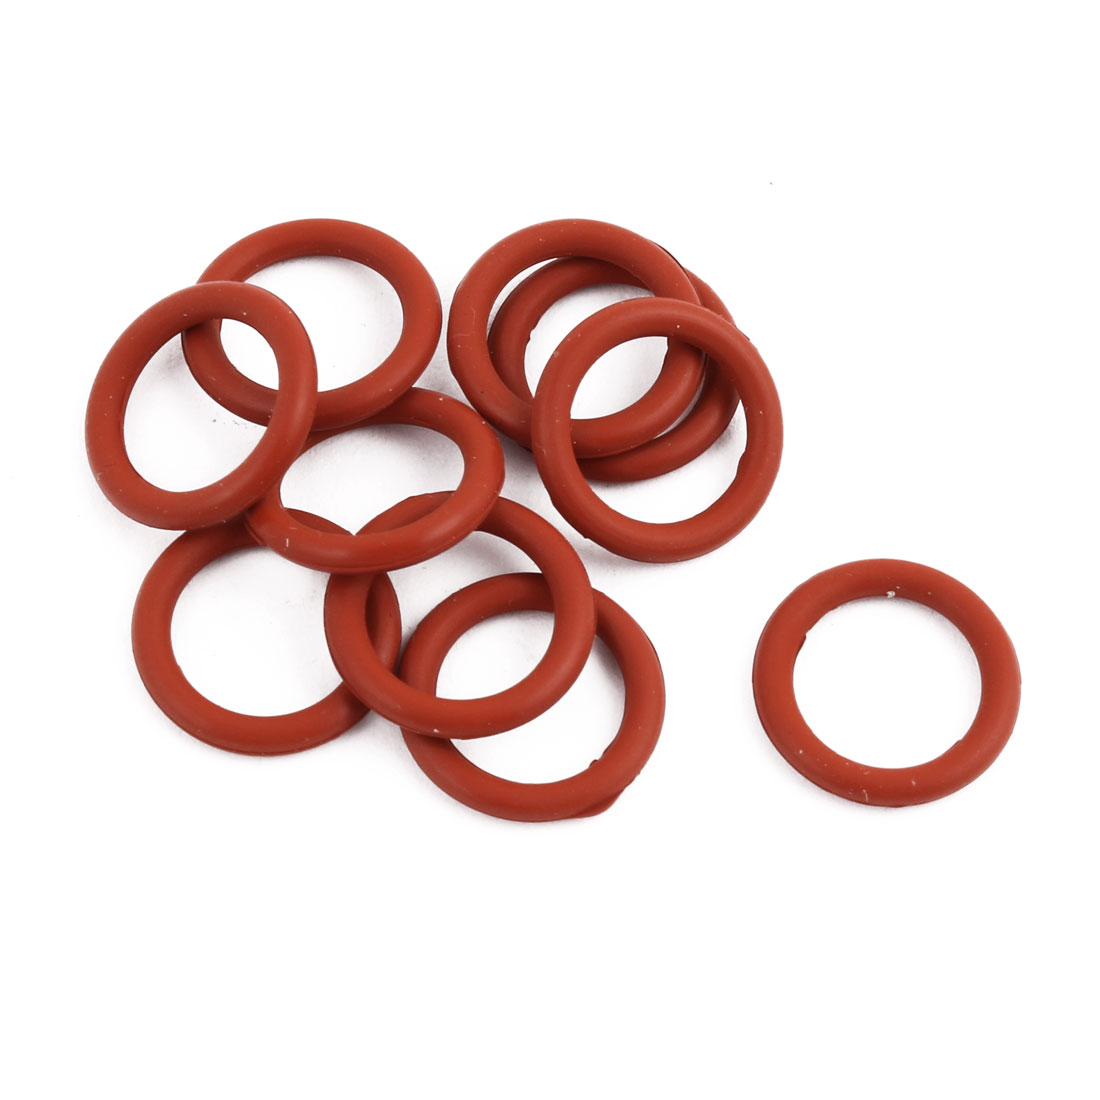 10Pcs Red Round Nitrile Butadiene Rubber NBR O-Ring 13mm OD 1.9mm Width